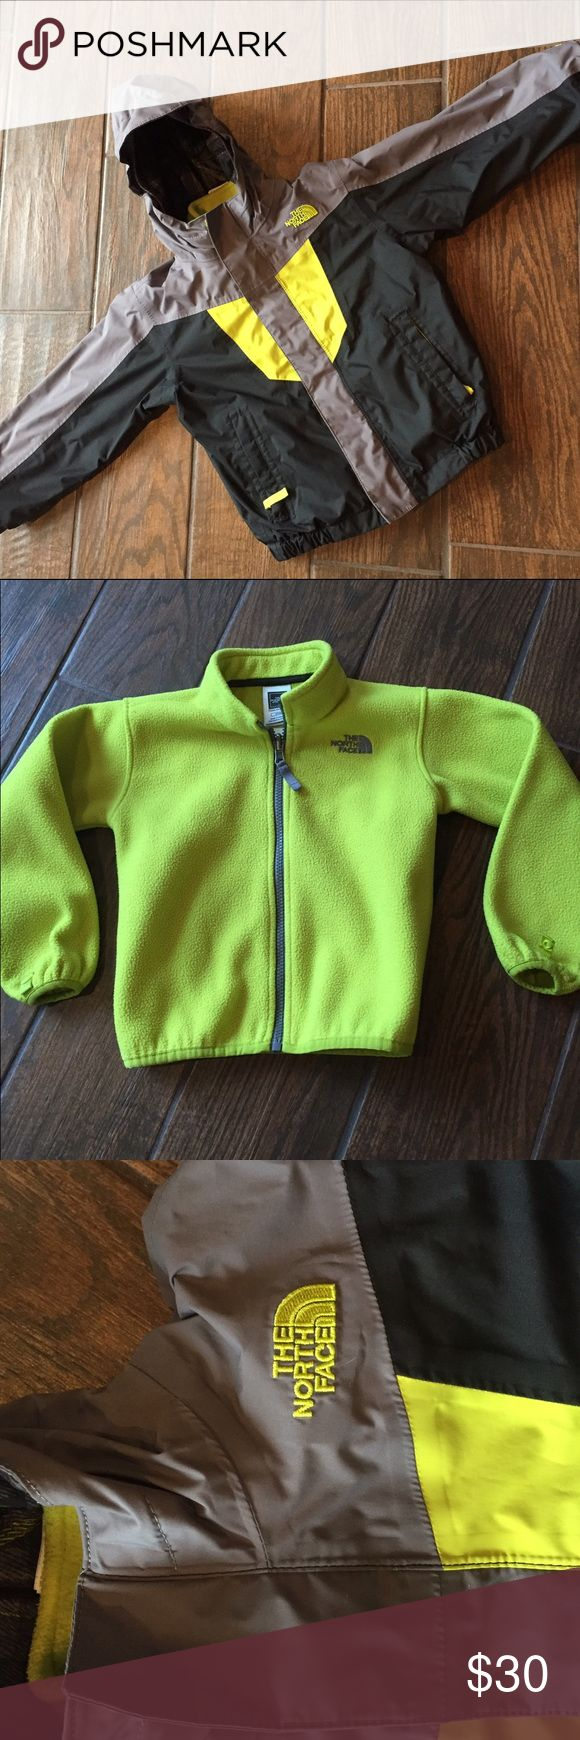 North Face toddler boys winter coat-fleece & shell North Face toddler boy winter coat-fleece and shell / smoke free home / not worn too often / slight pulling on fleece (see picture) due to wash North Face Jackets & Coats